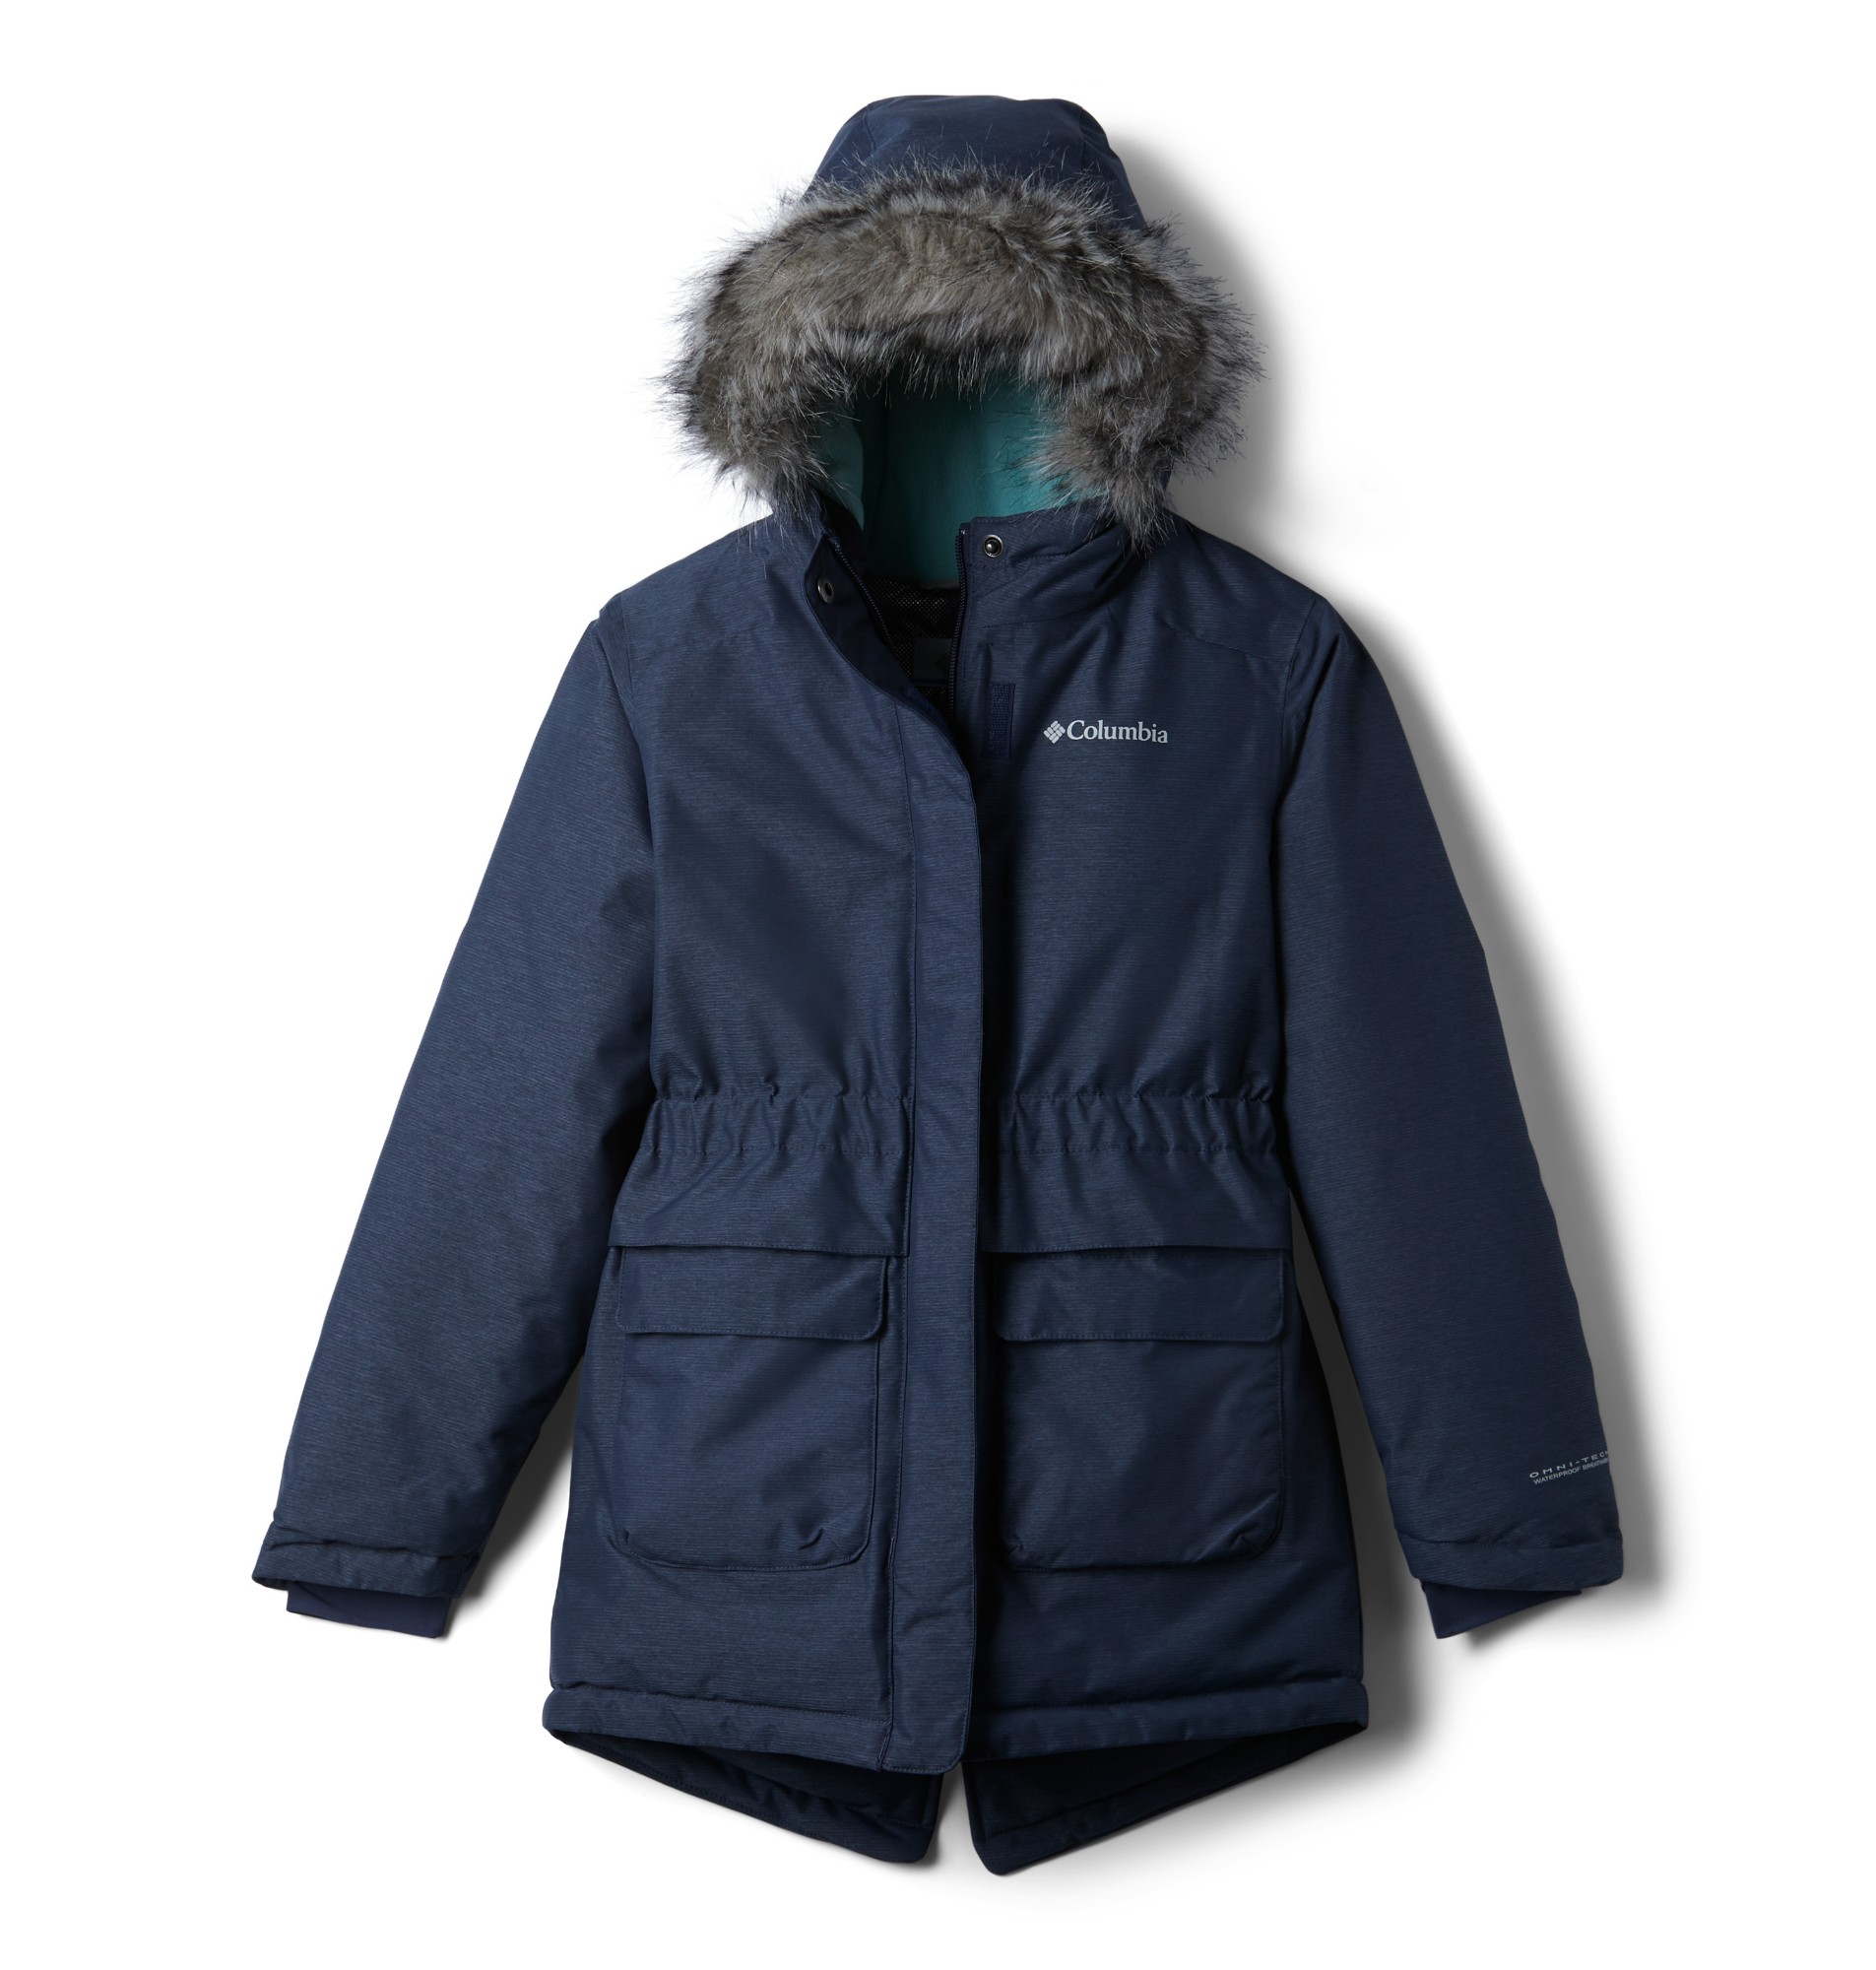 Columbia Nordic Strider Jacket Girls Nocturnal Heather 140